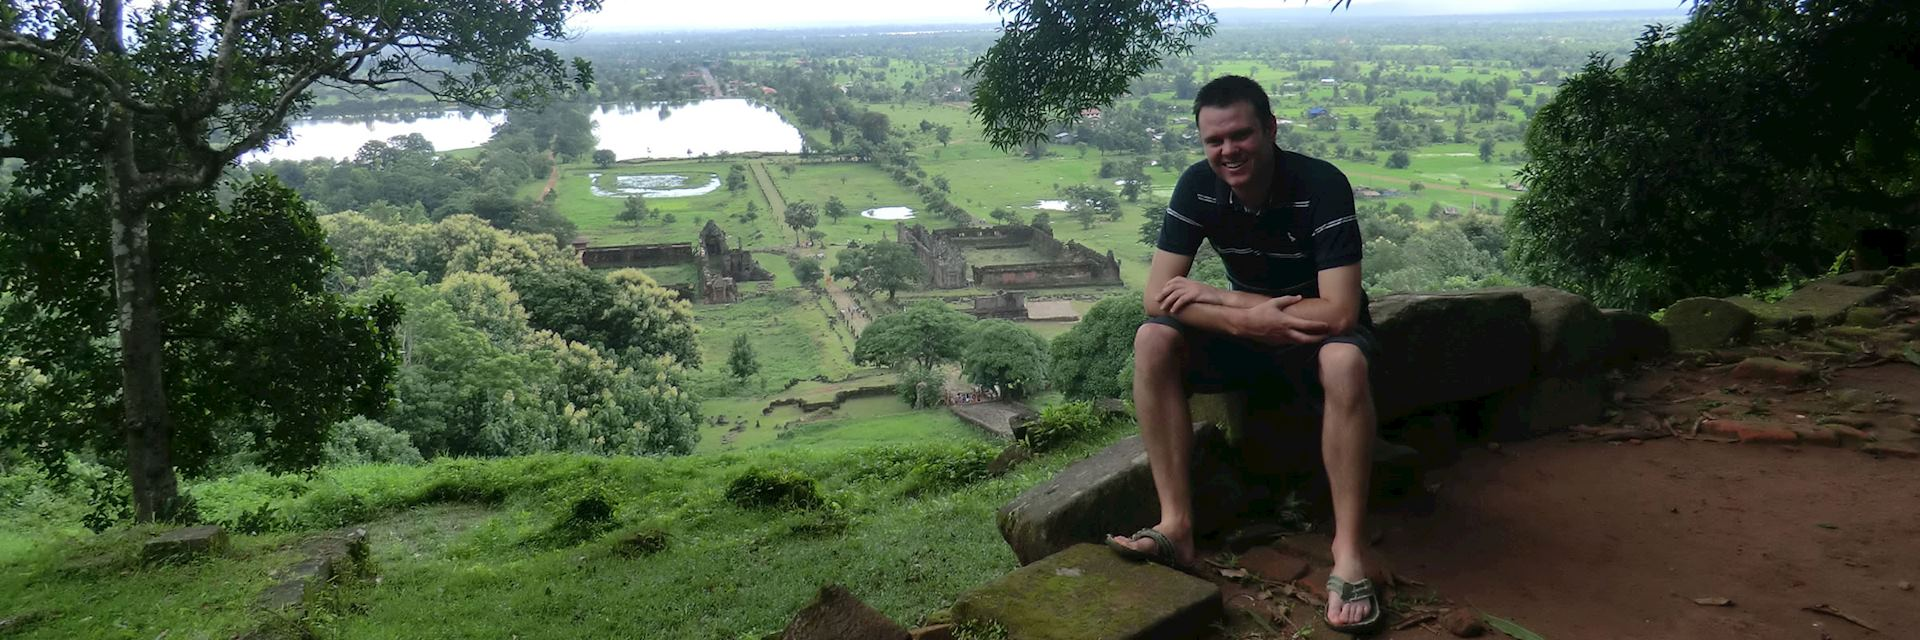 William and the panaromic view at Wat Phou in Southern Laos